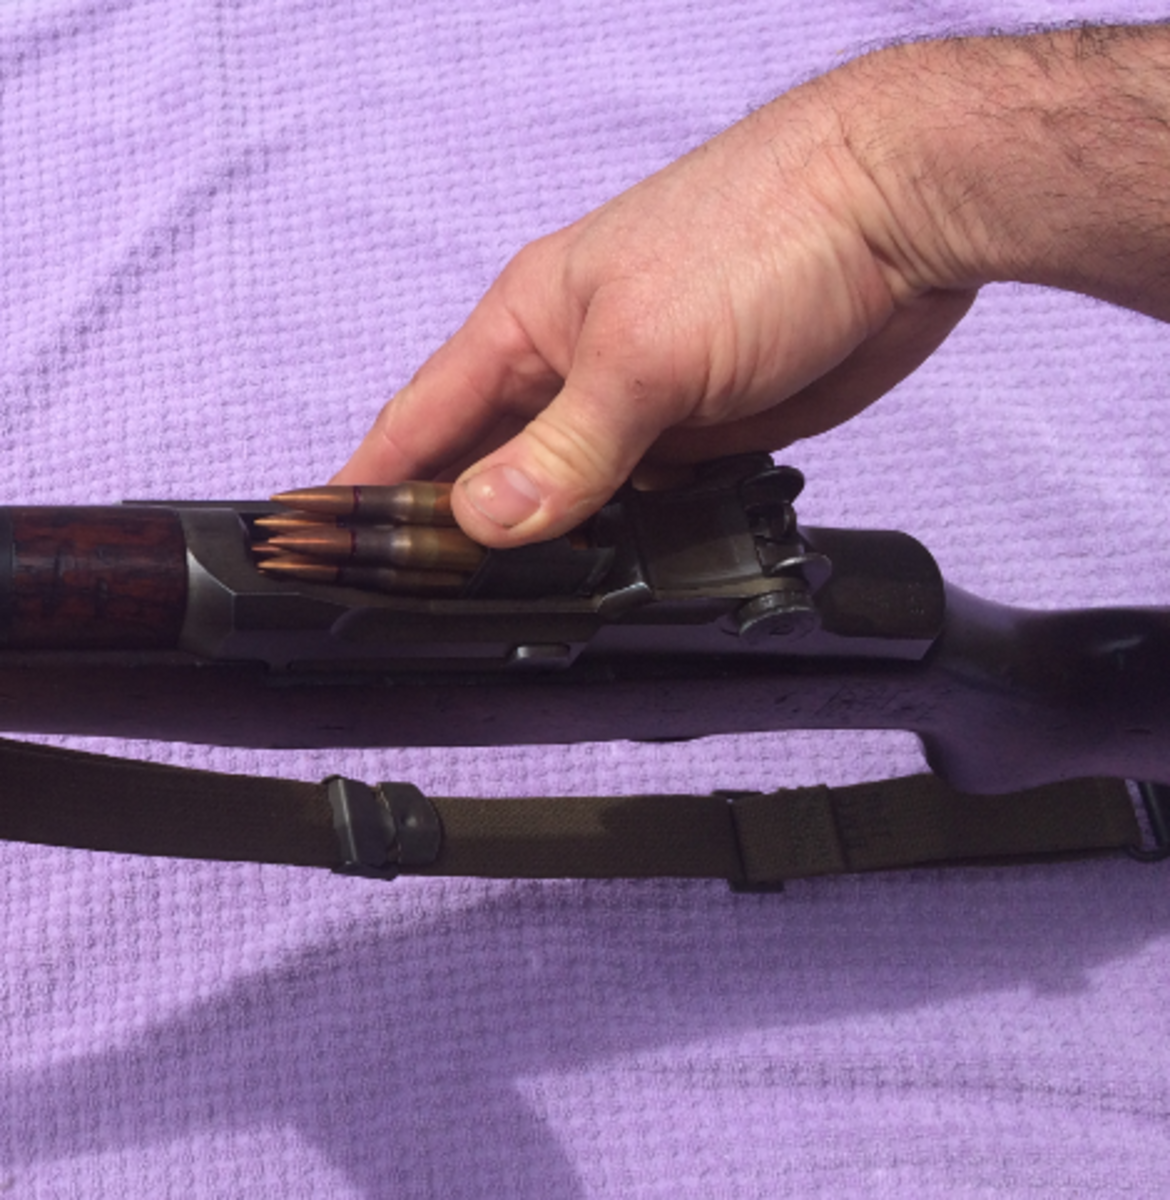 The M1's 8-round internal magazine is reloaded fast with en-block clips.